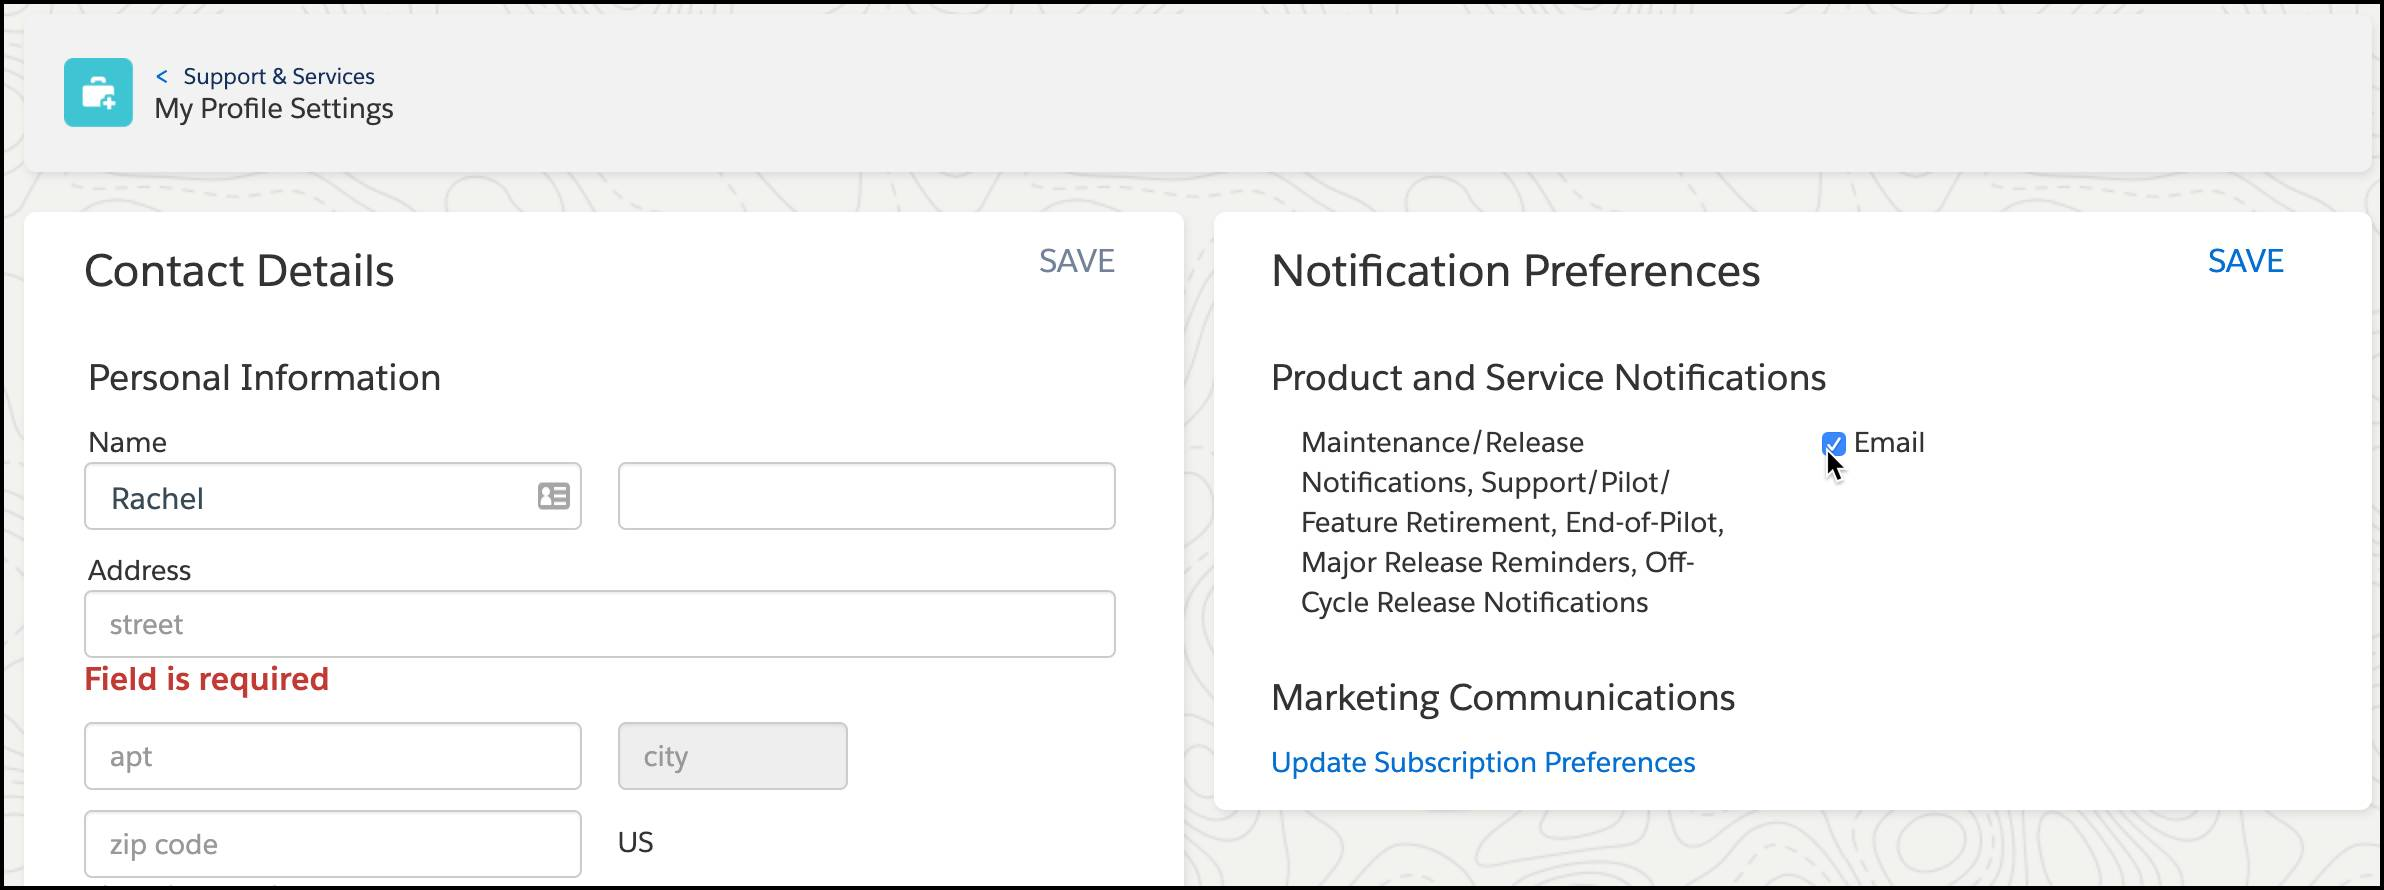 Support contact details and notification preferences page.